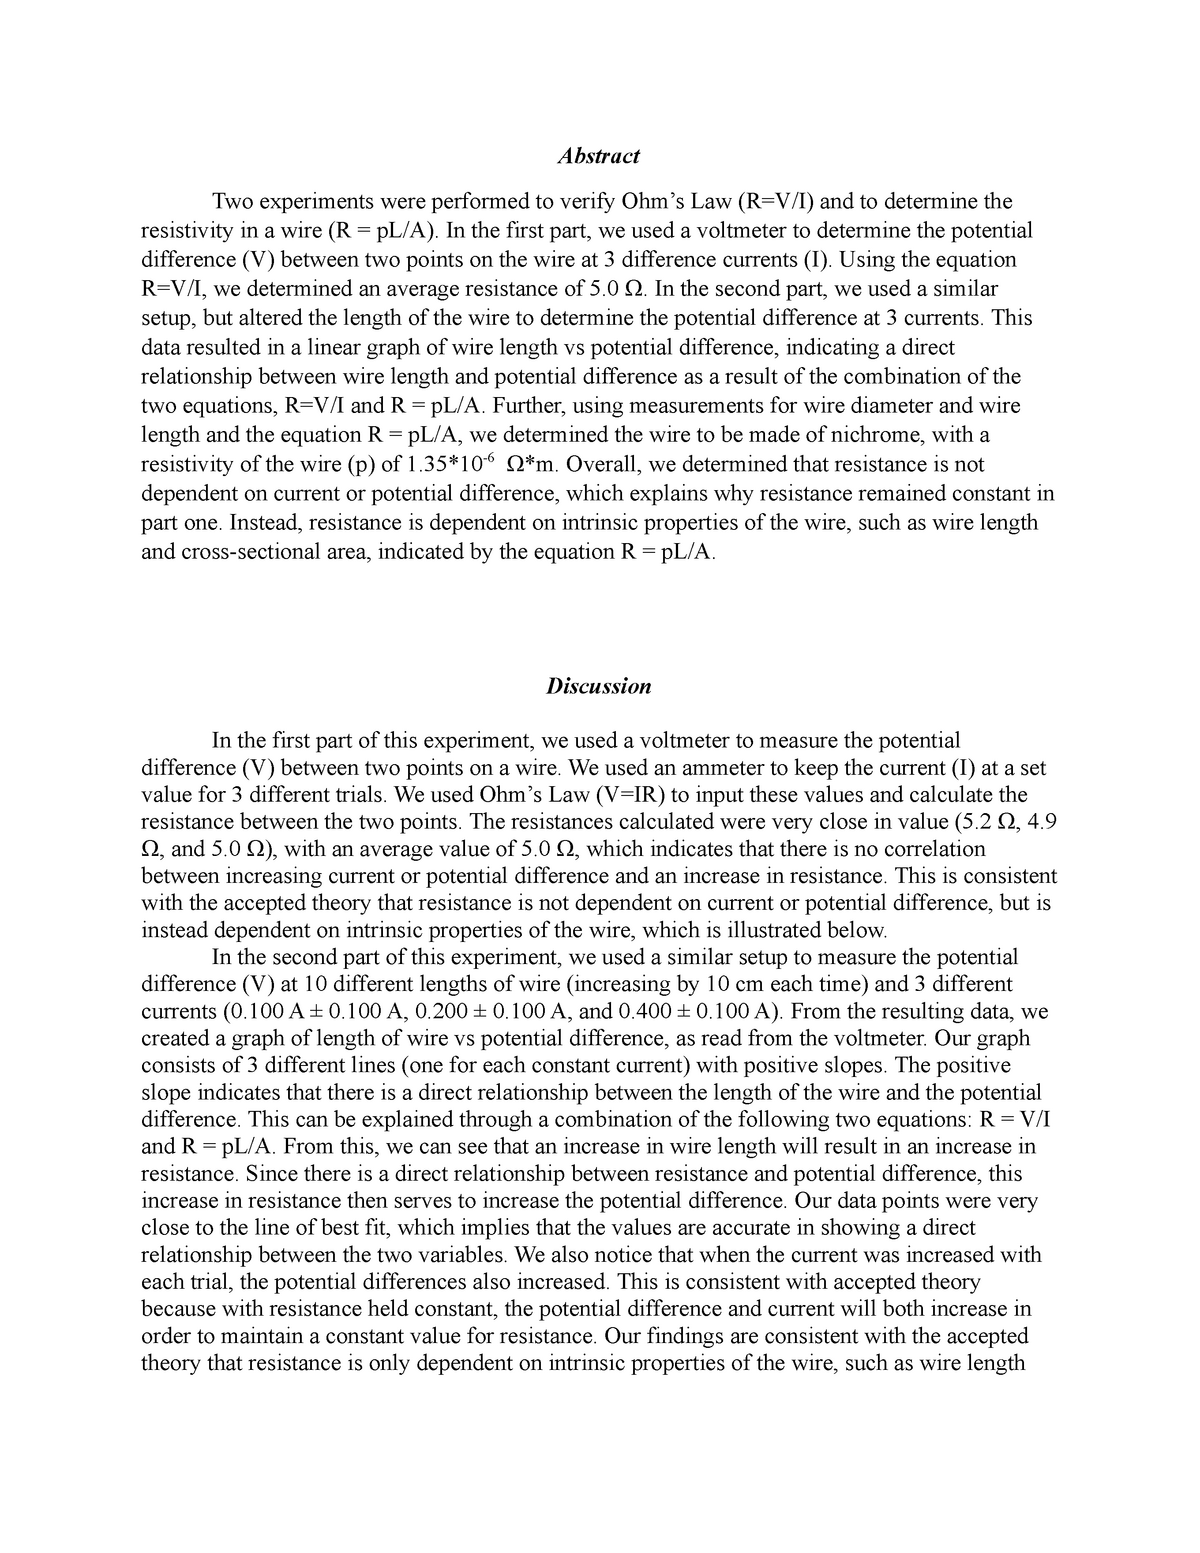 Seminar assignments - Ohm's law abstract and discussion